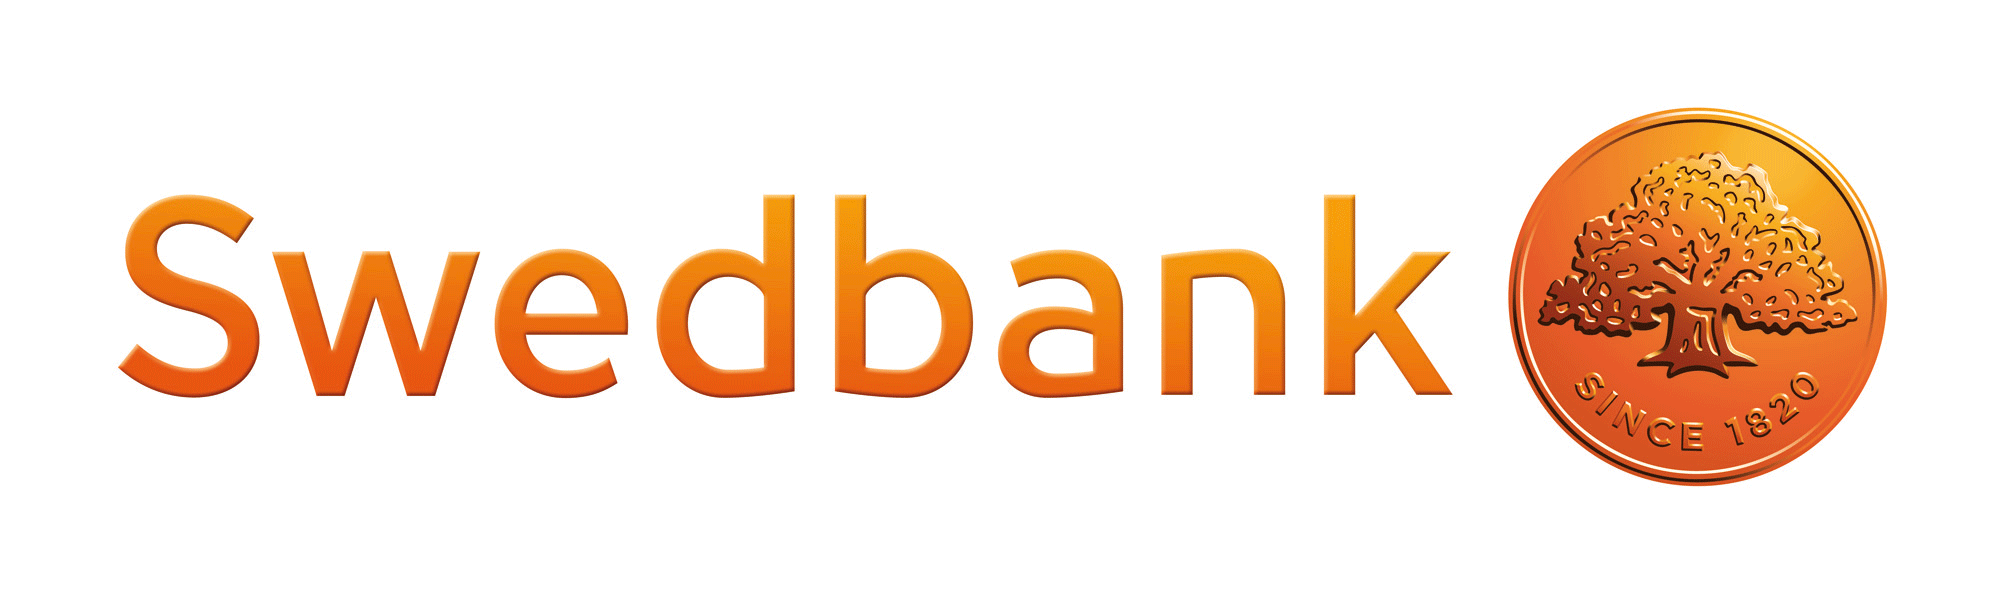 Swedbank Q3 2019: More Pressure, Money Laundering Accusations And A Slight Drop